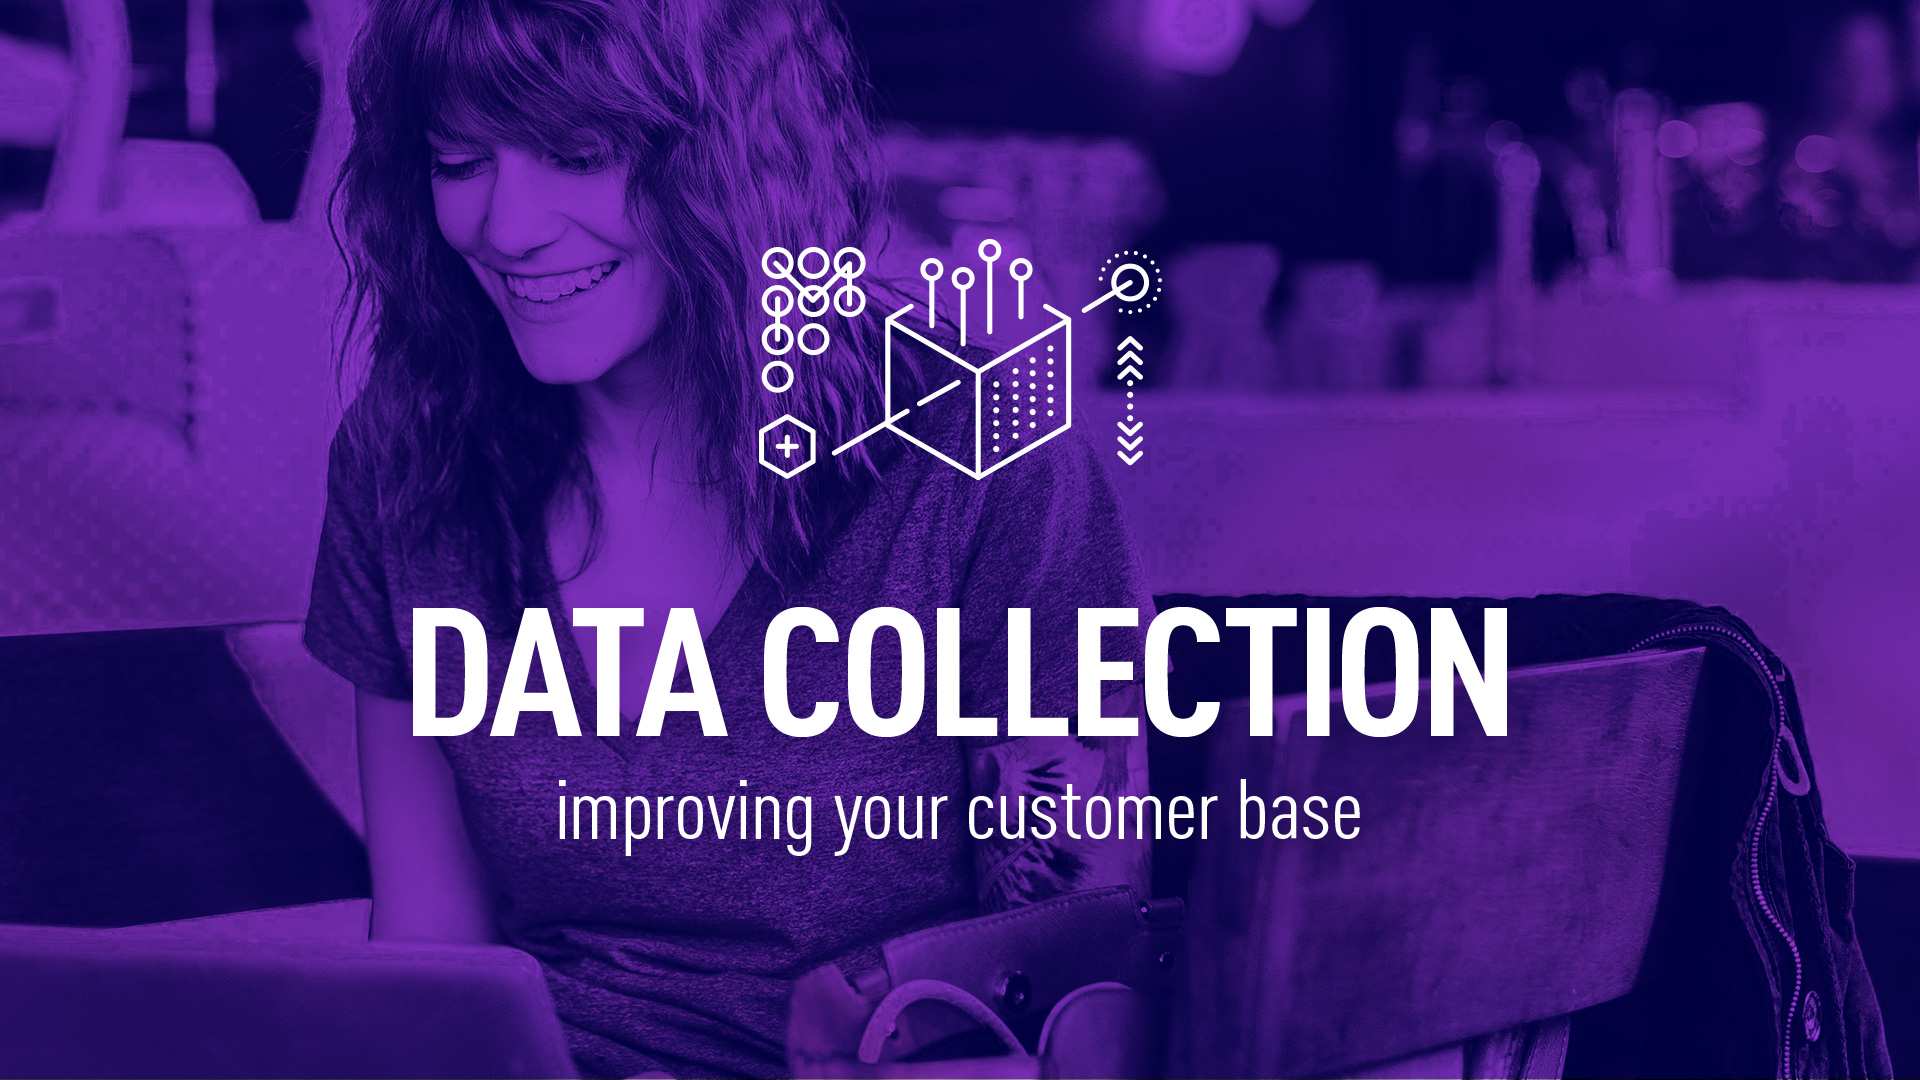 Data collection methods for improving your customers base